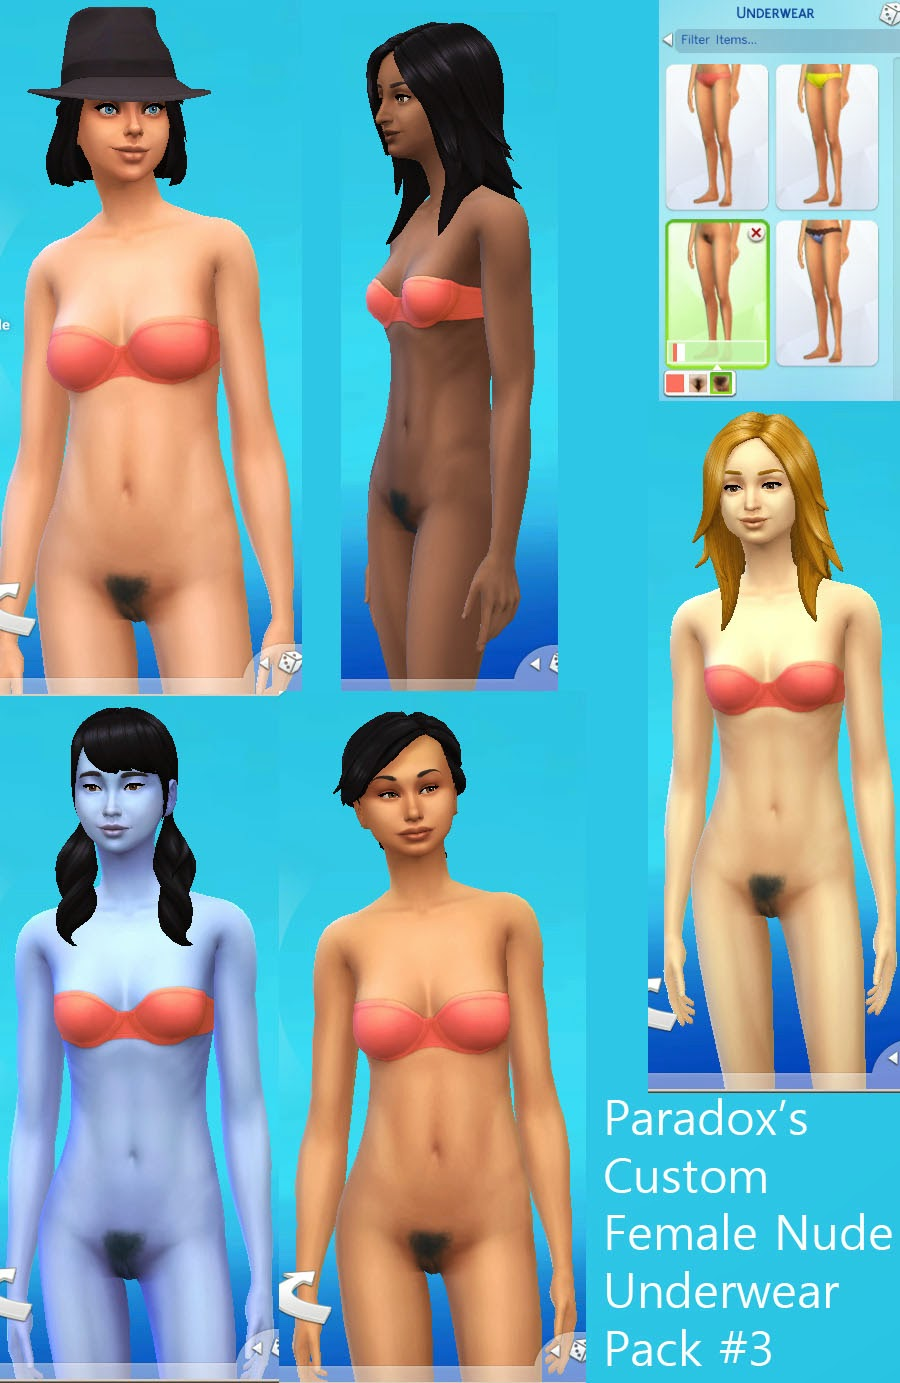 Female nude mods for sims nsfw image